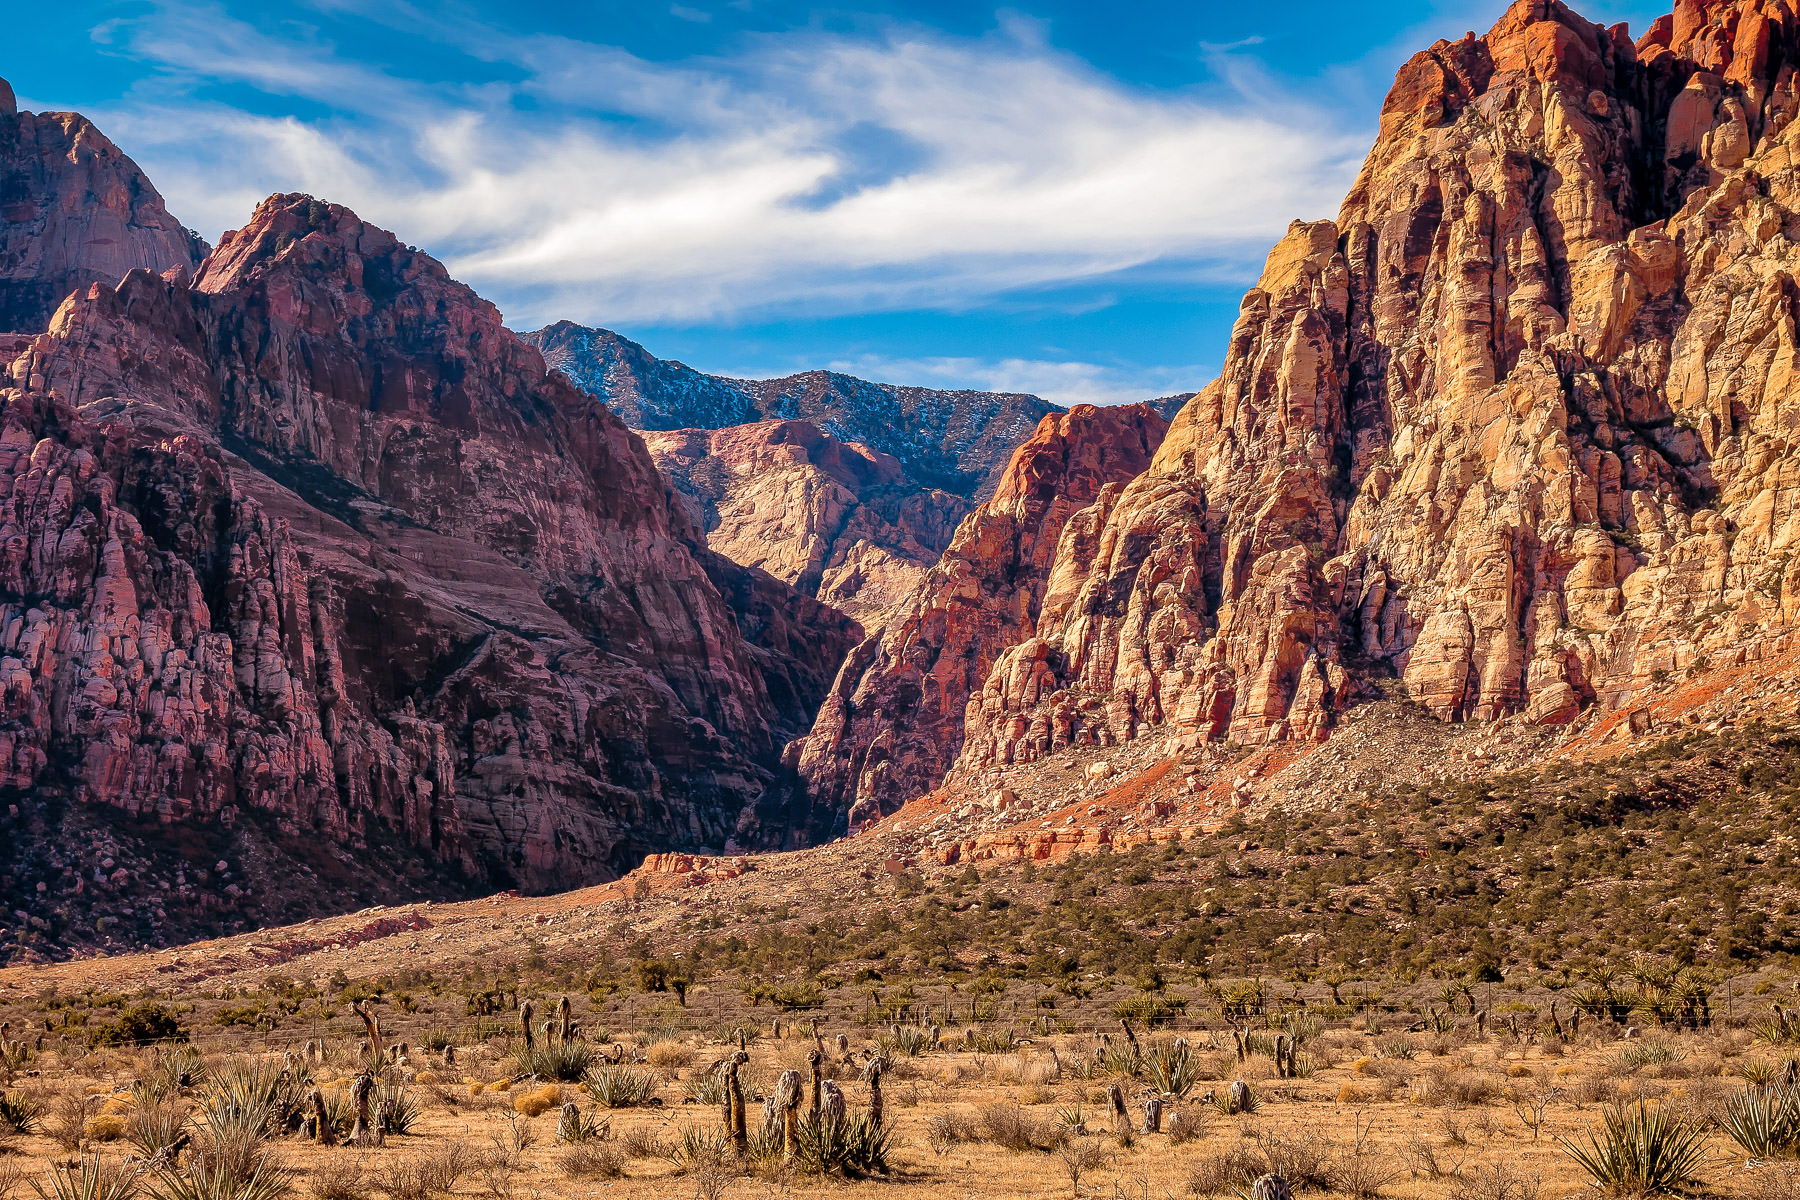 Rugged landscape rises from the desert floor in Nevada's Red Rock Canyon.